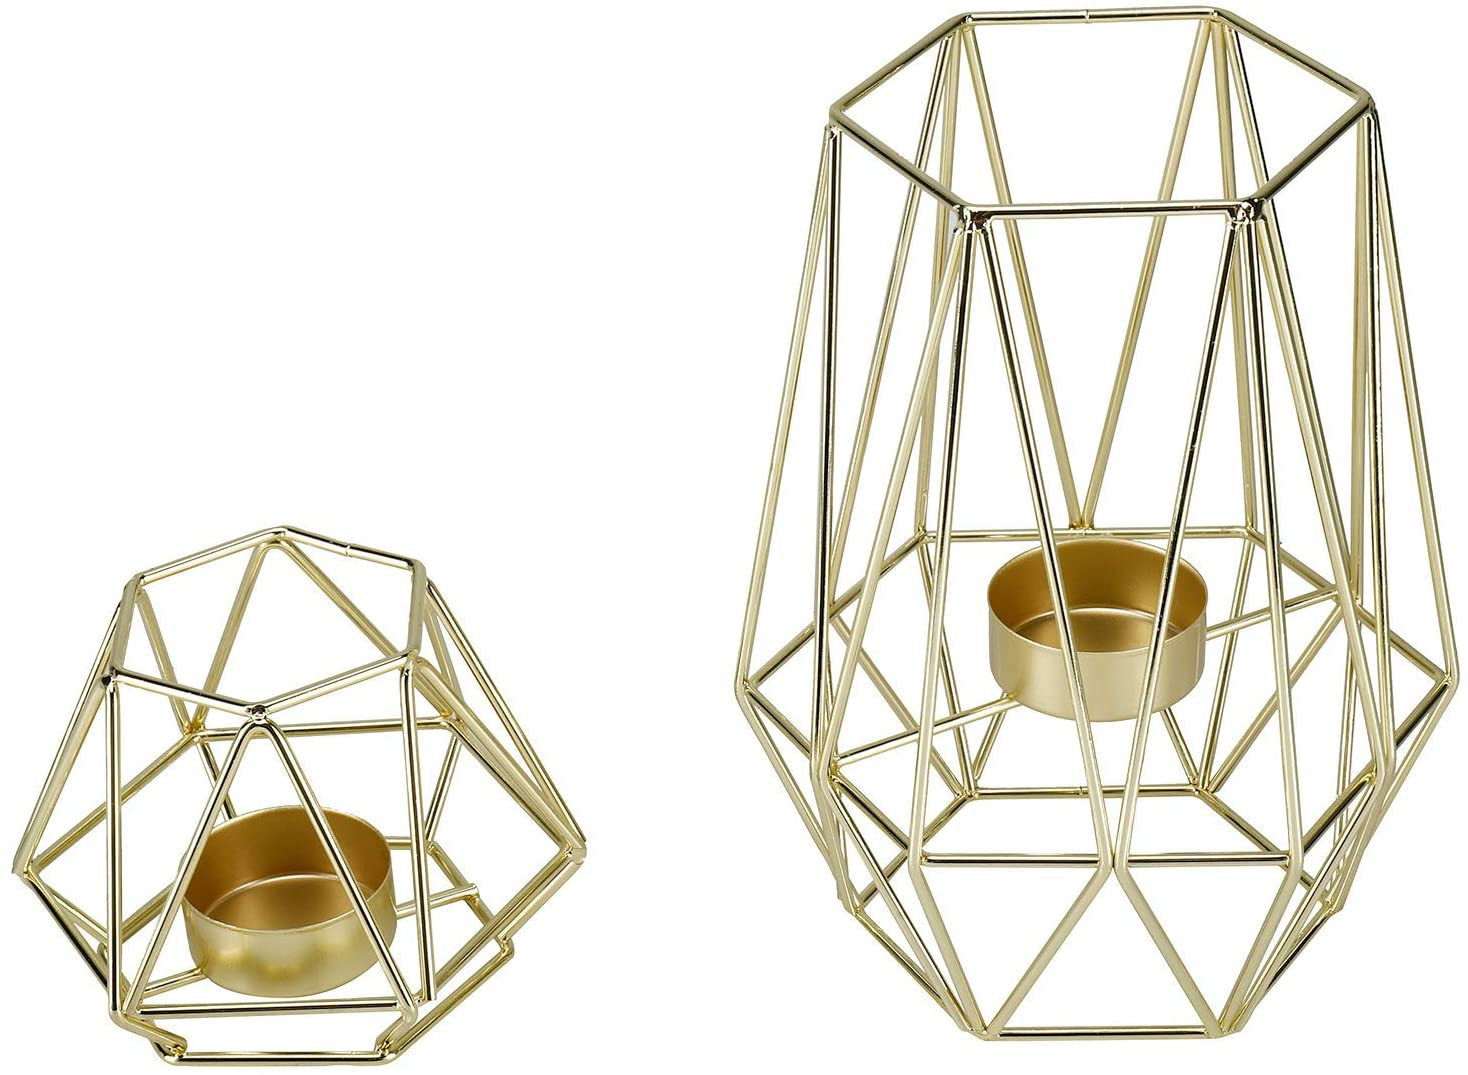 Gold Homtone Metal Wire Iron Tealight Candle Holders for Tables Decor Living Room Bathroom Decorations Gold Geometric Shape Holders Set of 2